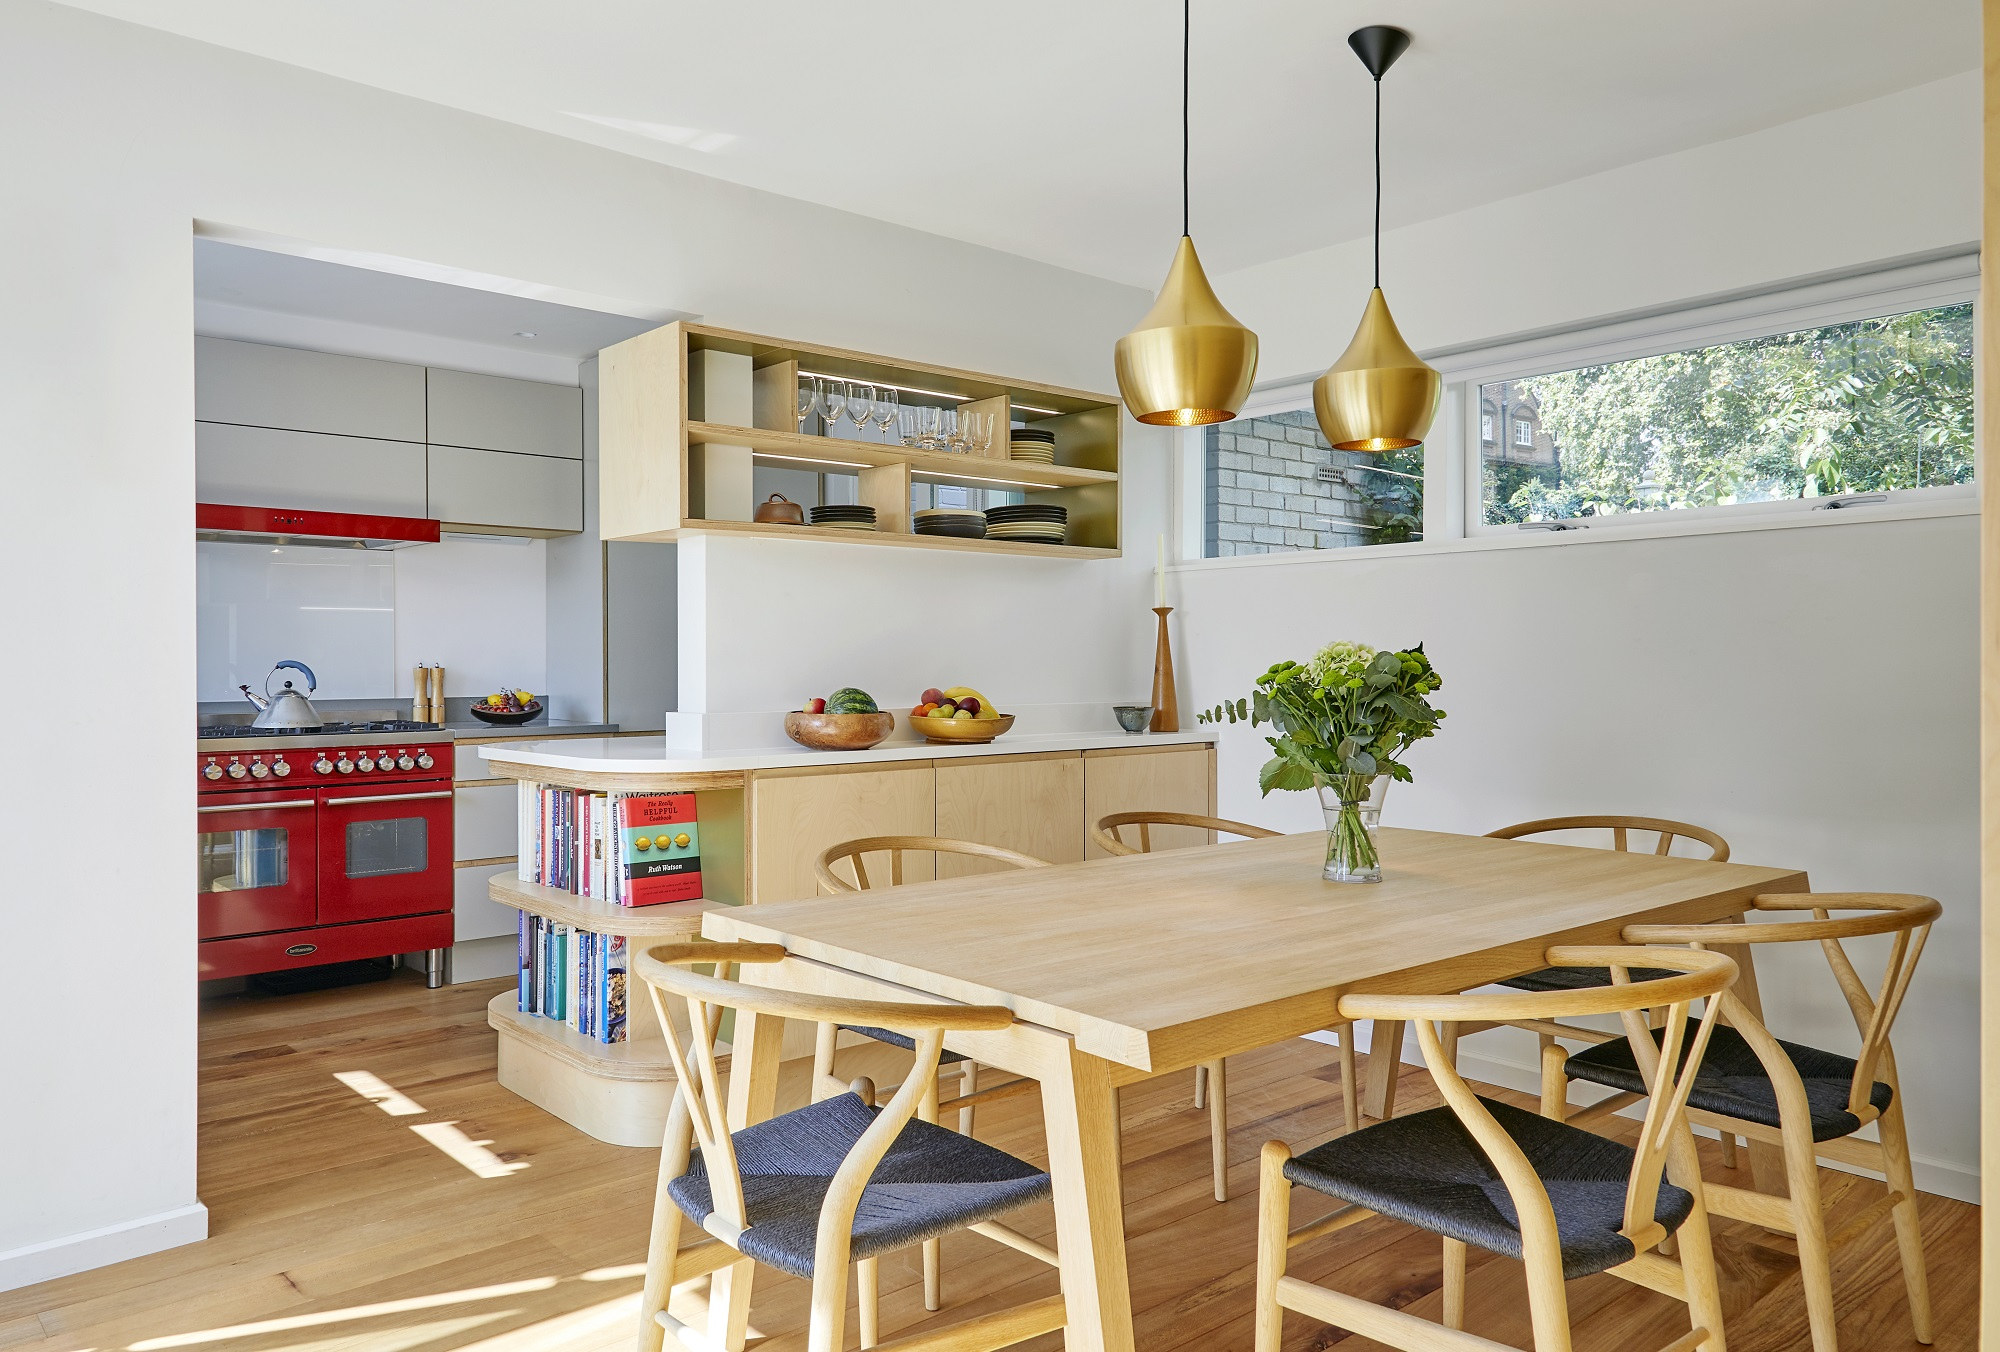 32 stylish dining room ideas to impress your dinner guests - the luxpad